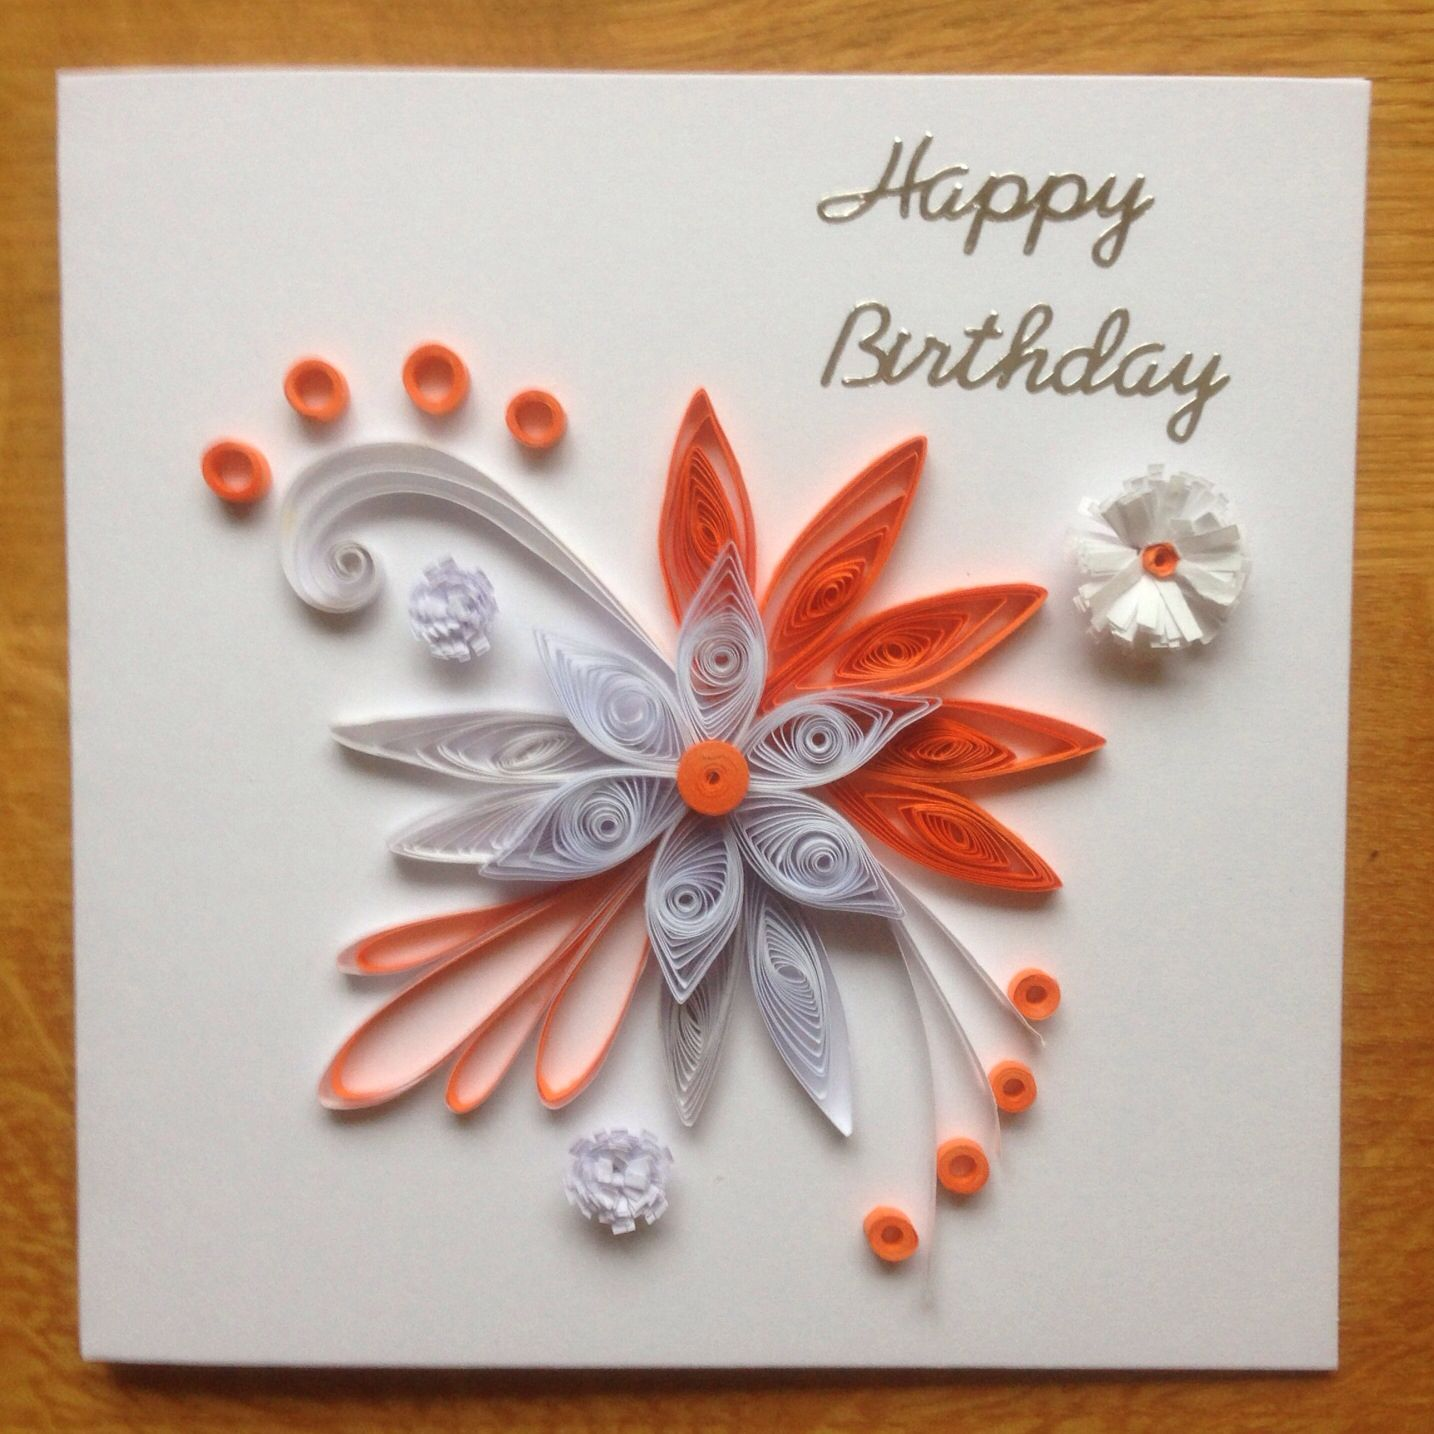 Quilling Birthday 2014 | Quilling | Pinterest | Quilling, Cards and ...